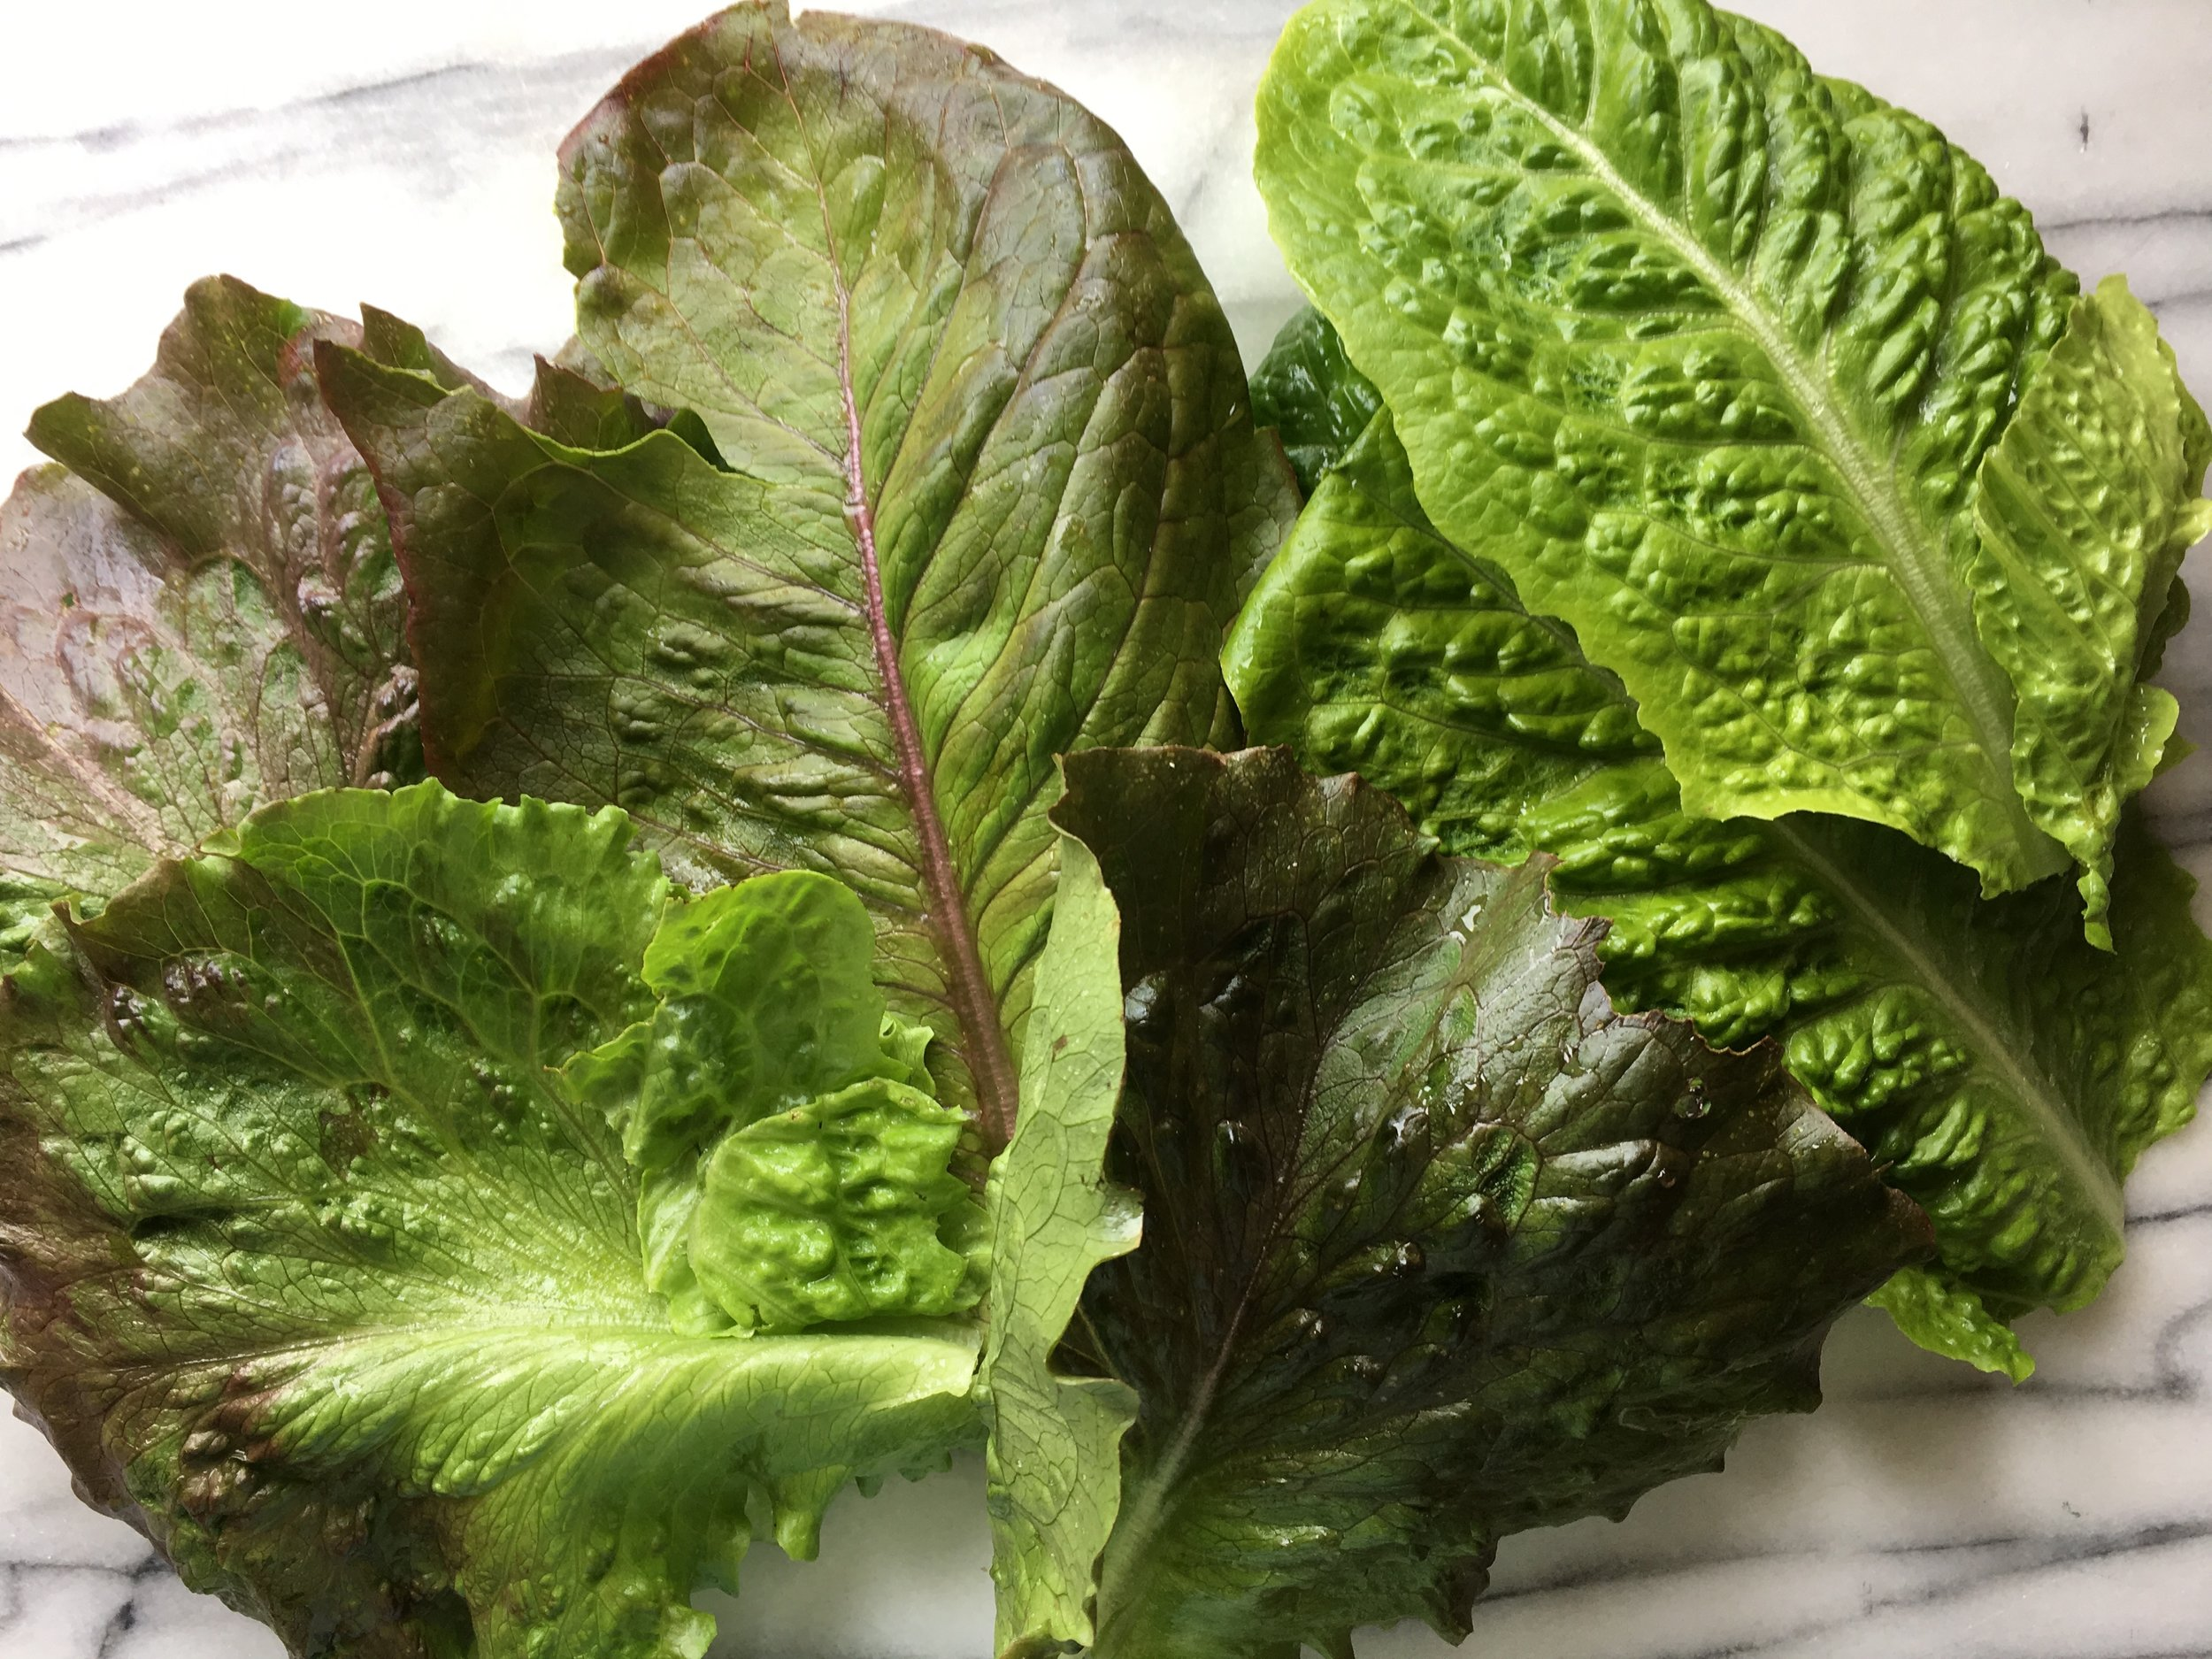 Here's what I gathered for a salad last night—'Jericho,' 'Cimarron' and lettuce from a summer mix.